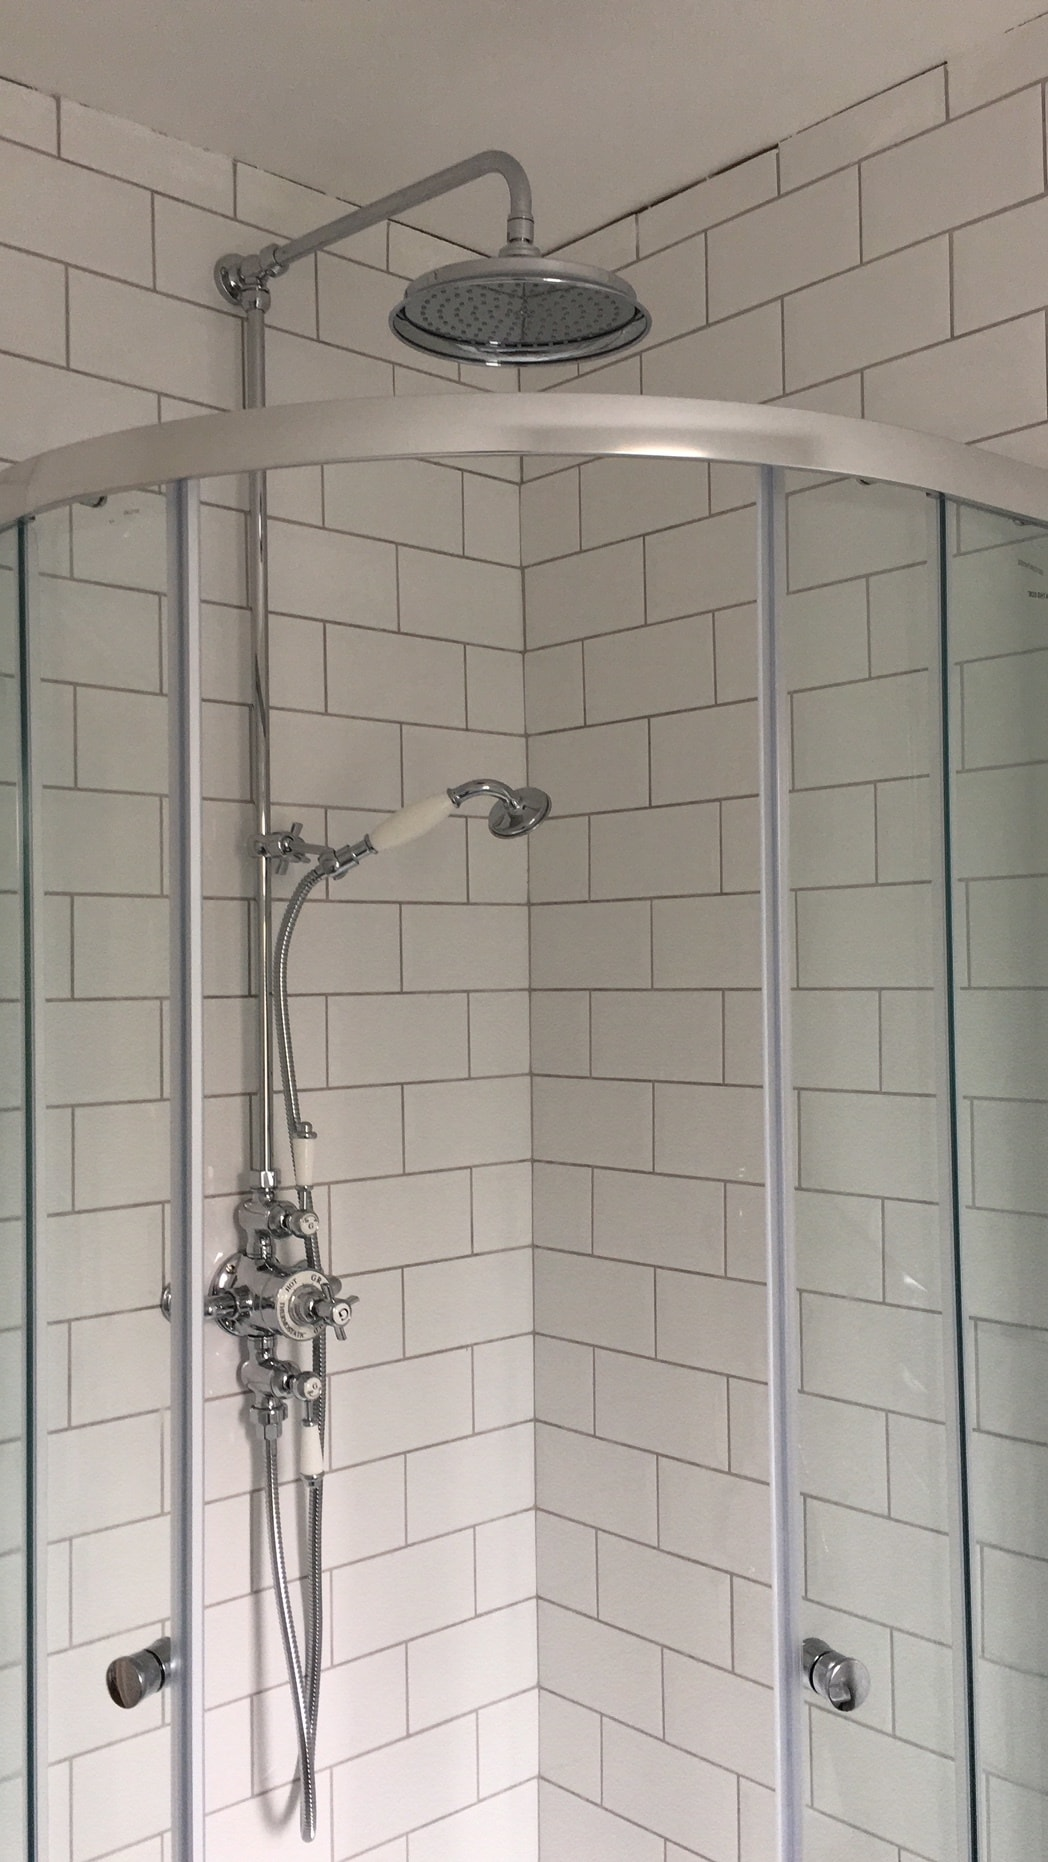 The metro tiles and coveted rainfall shower head